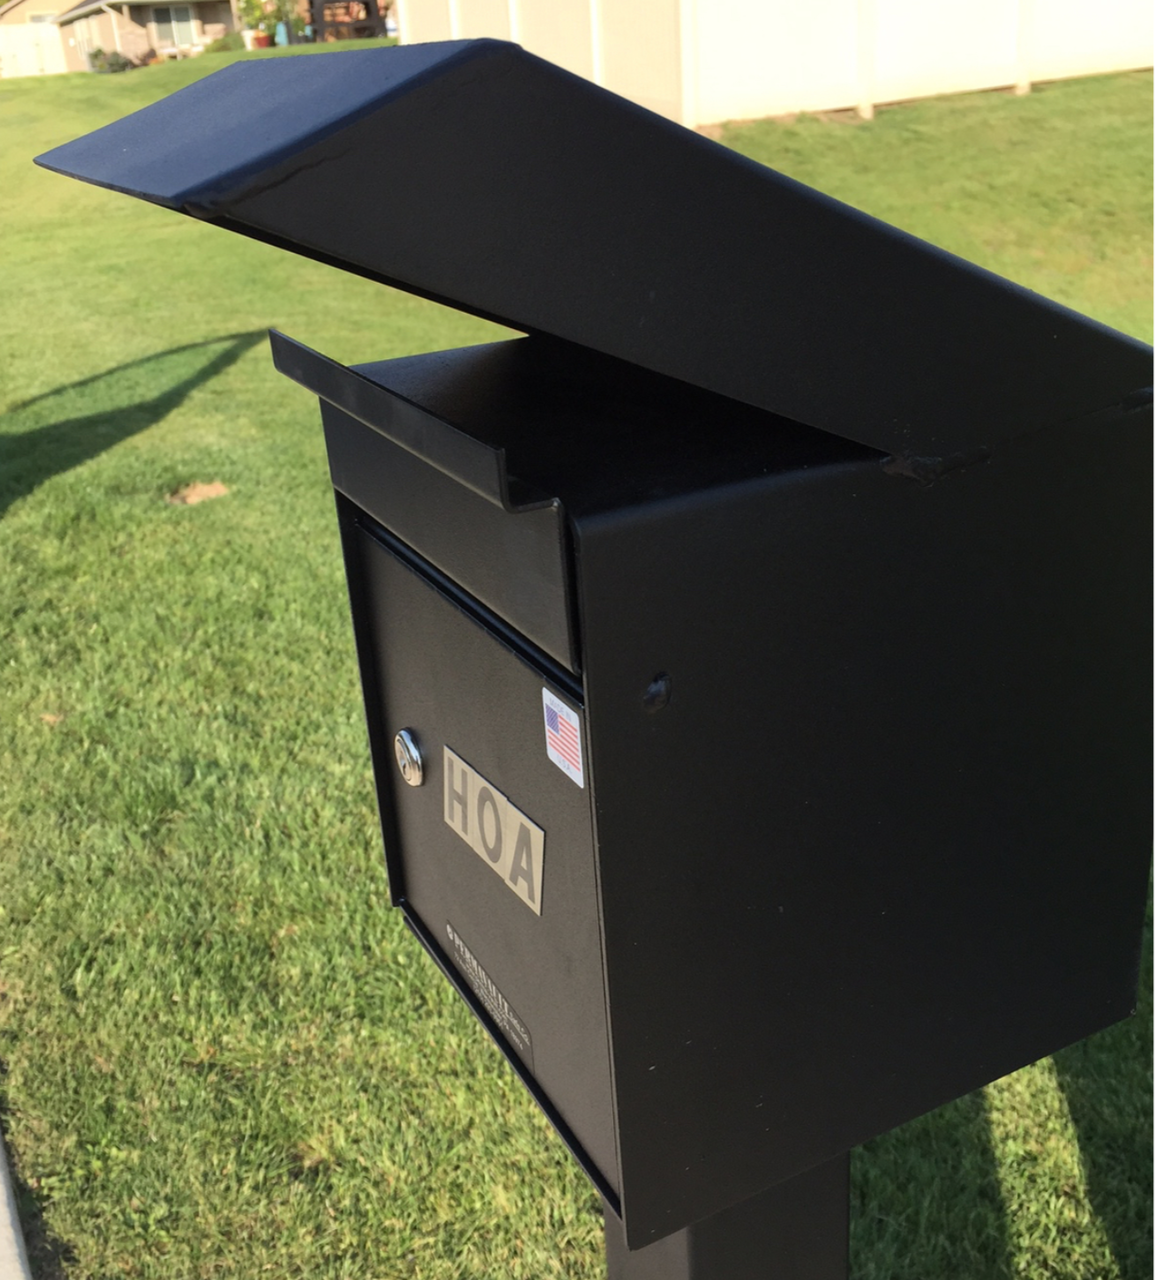 Large Outdoor Secure Payment Locking Drop Box shown mounted on a post